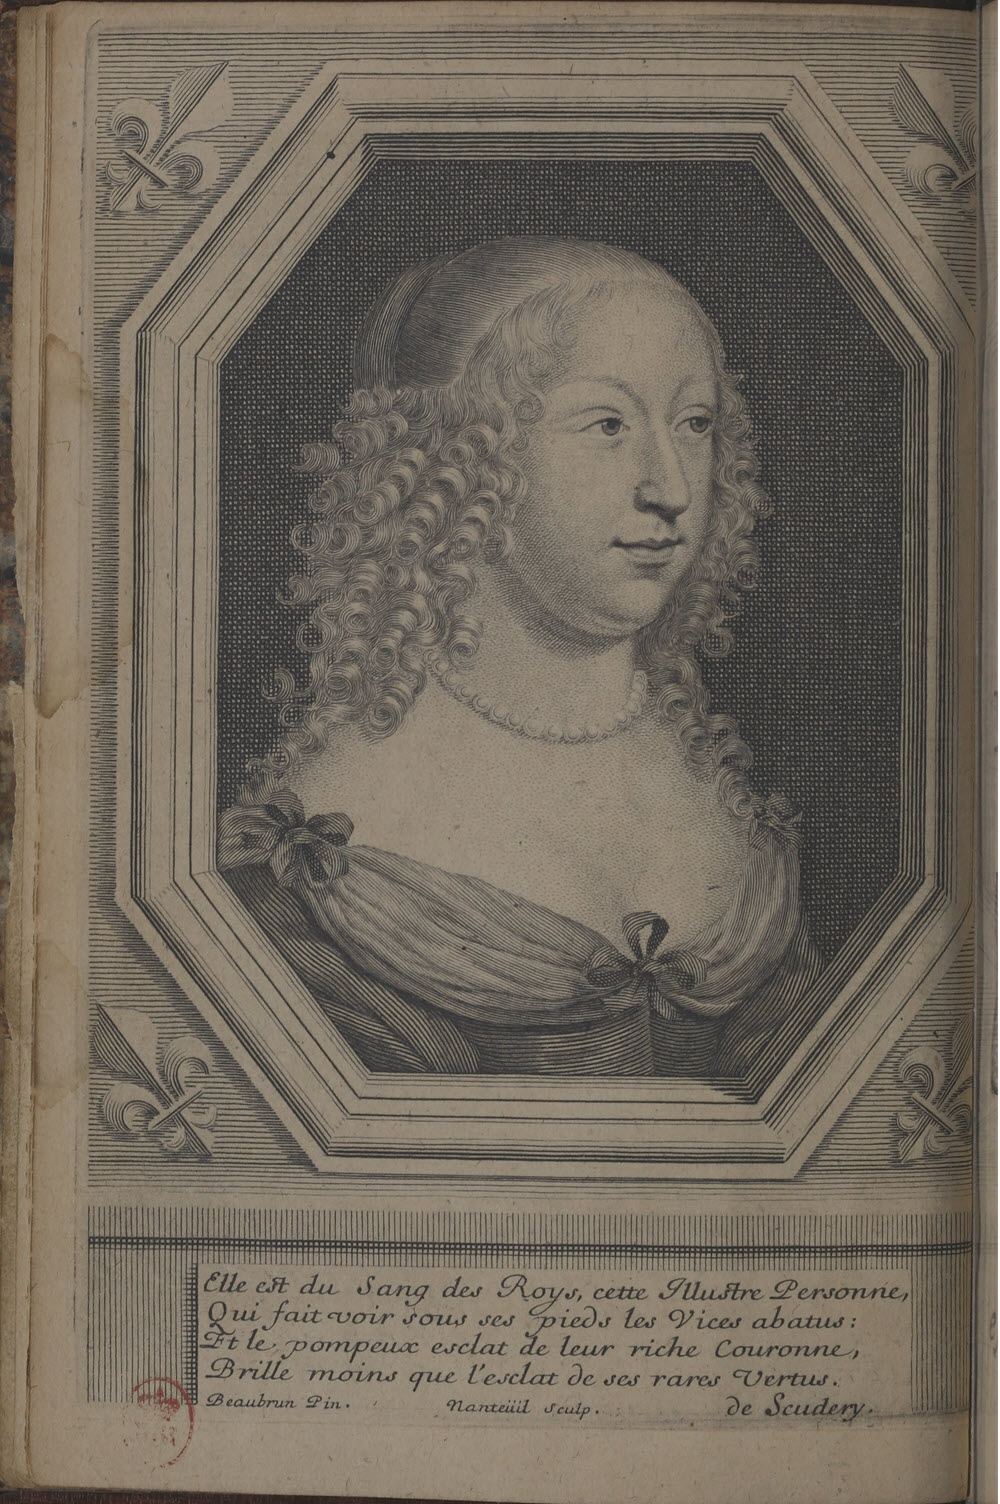 Portrait of Madeleine de SCudery from Clelie Histoire Romane Coll 8 1656